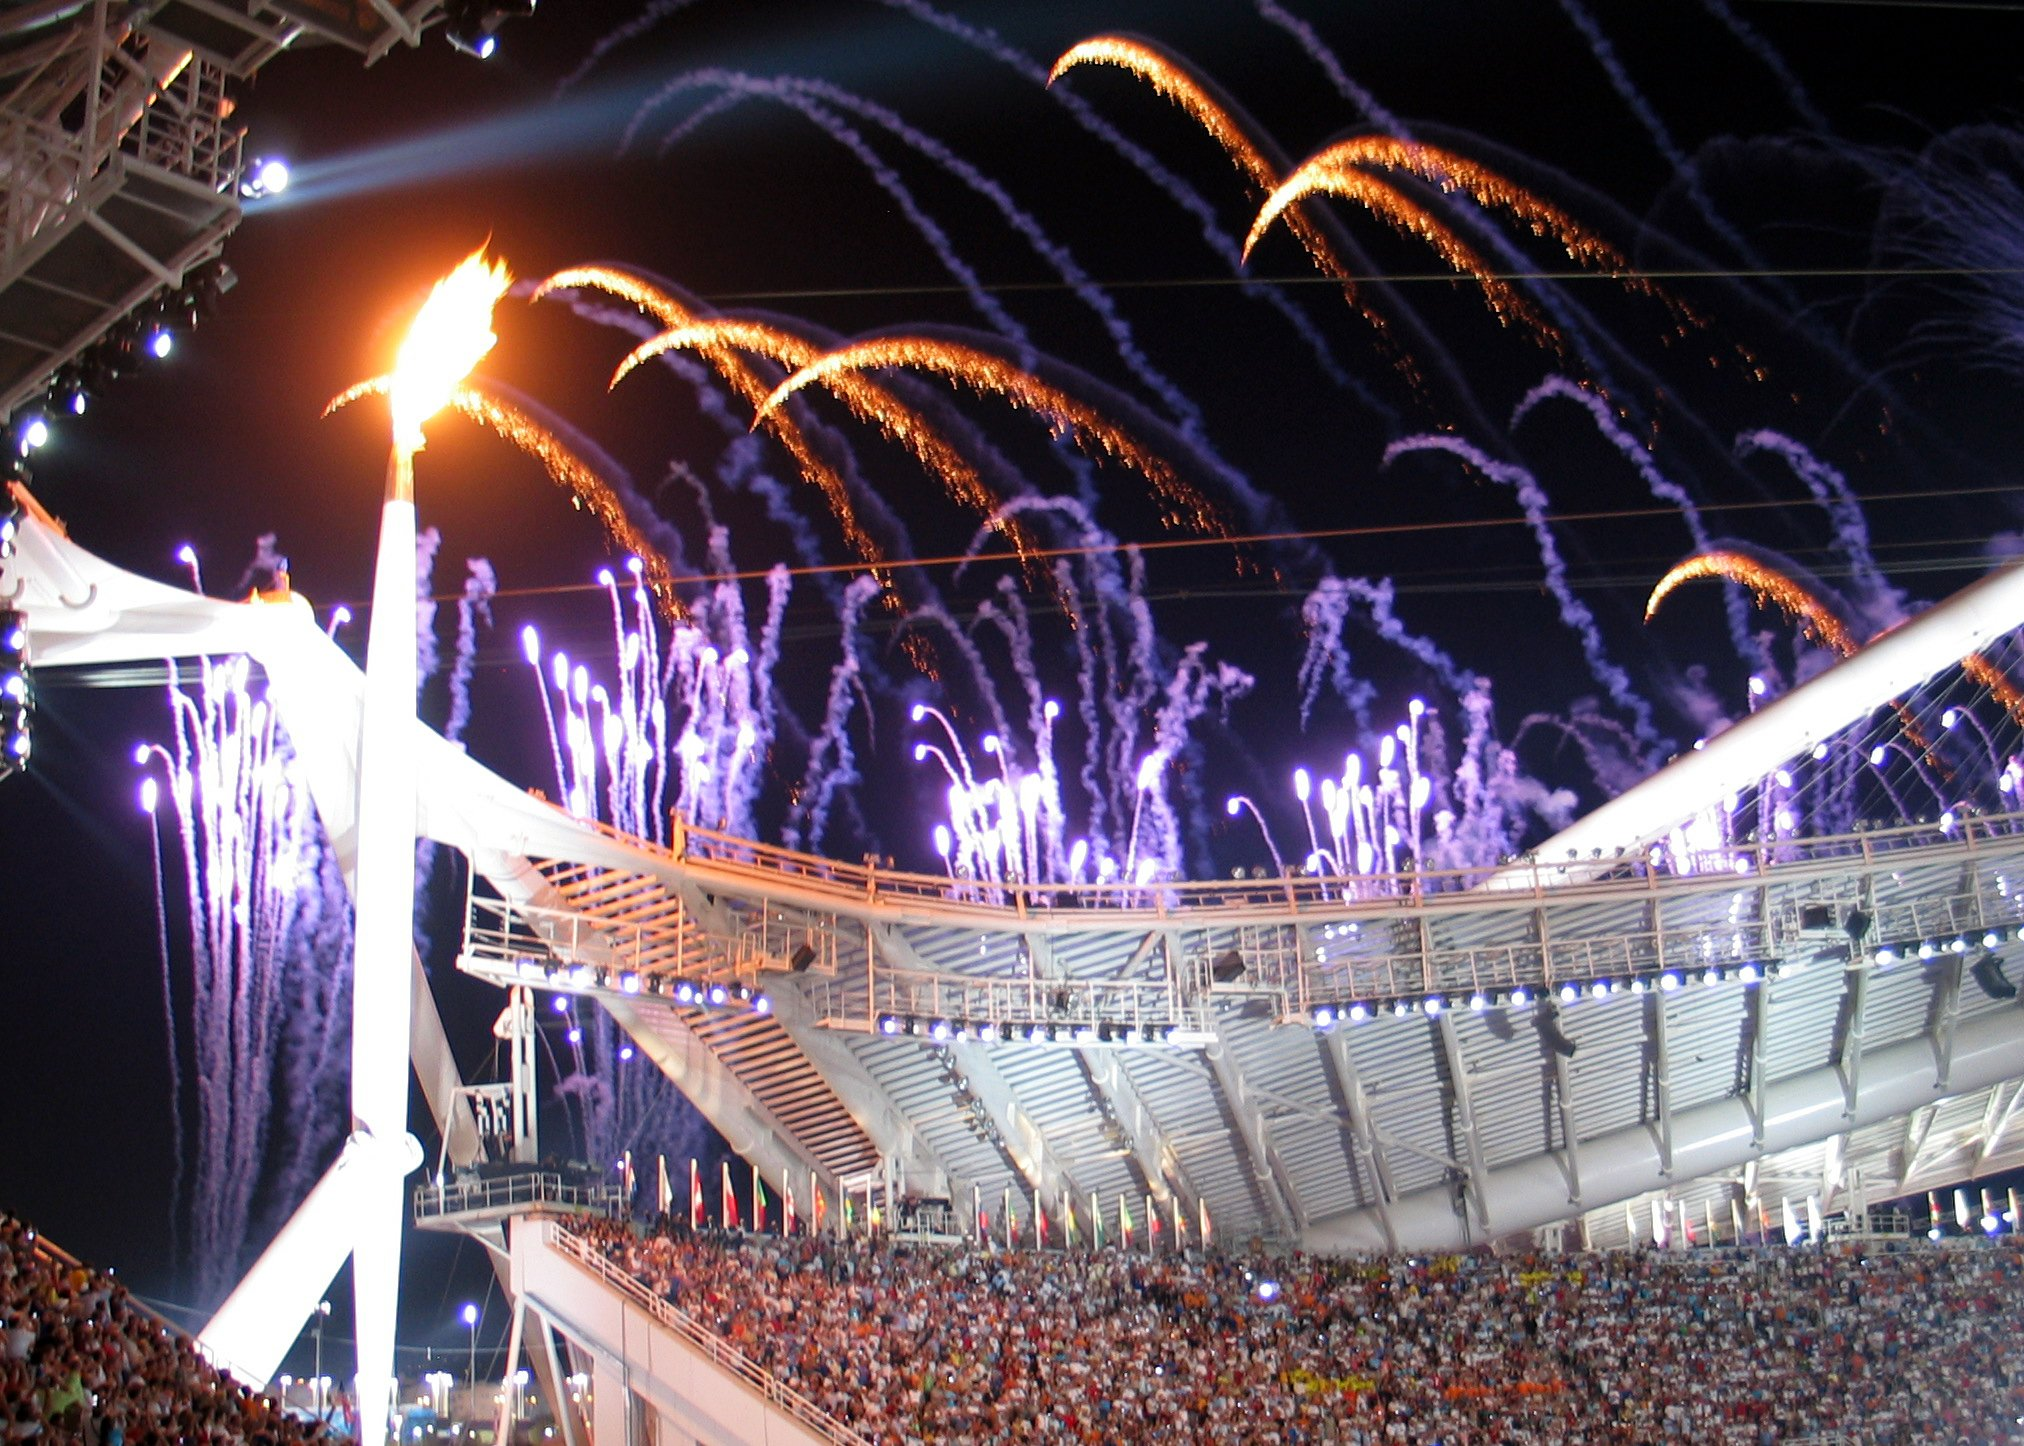 Olympic flame at 2004 opening ceremony in Athens. Greece | Source: Wikimedia Commons